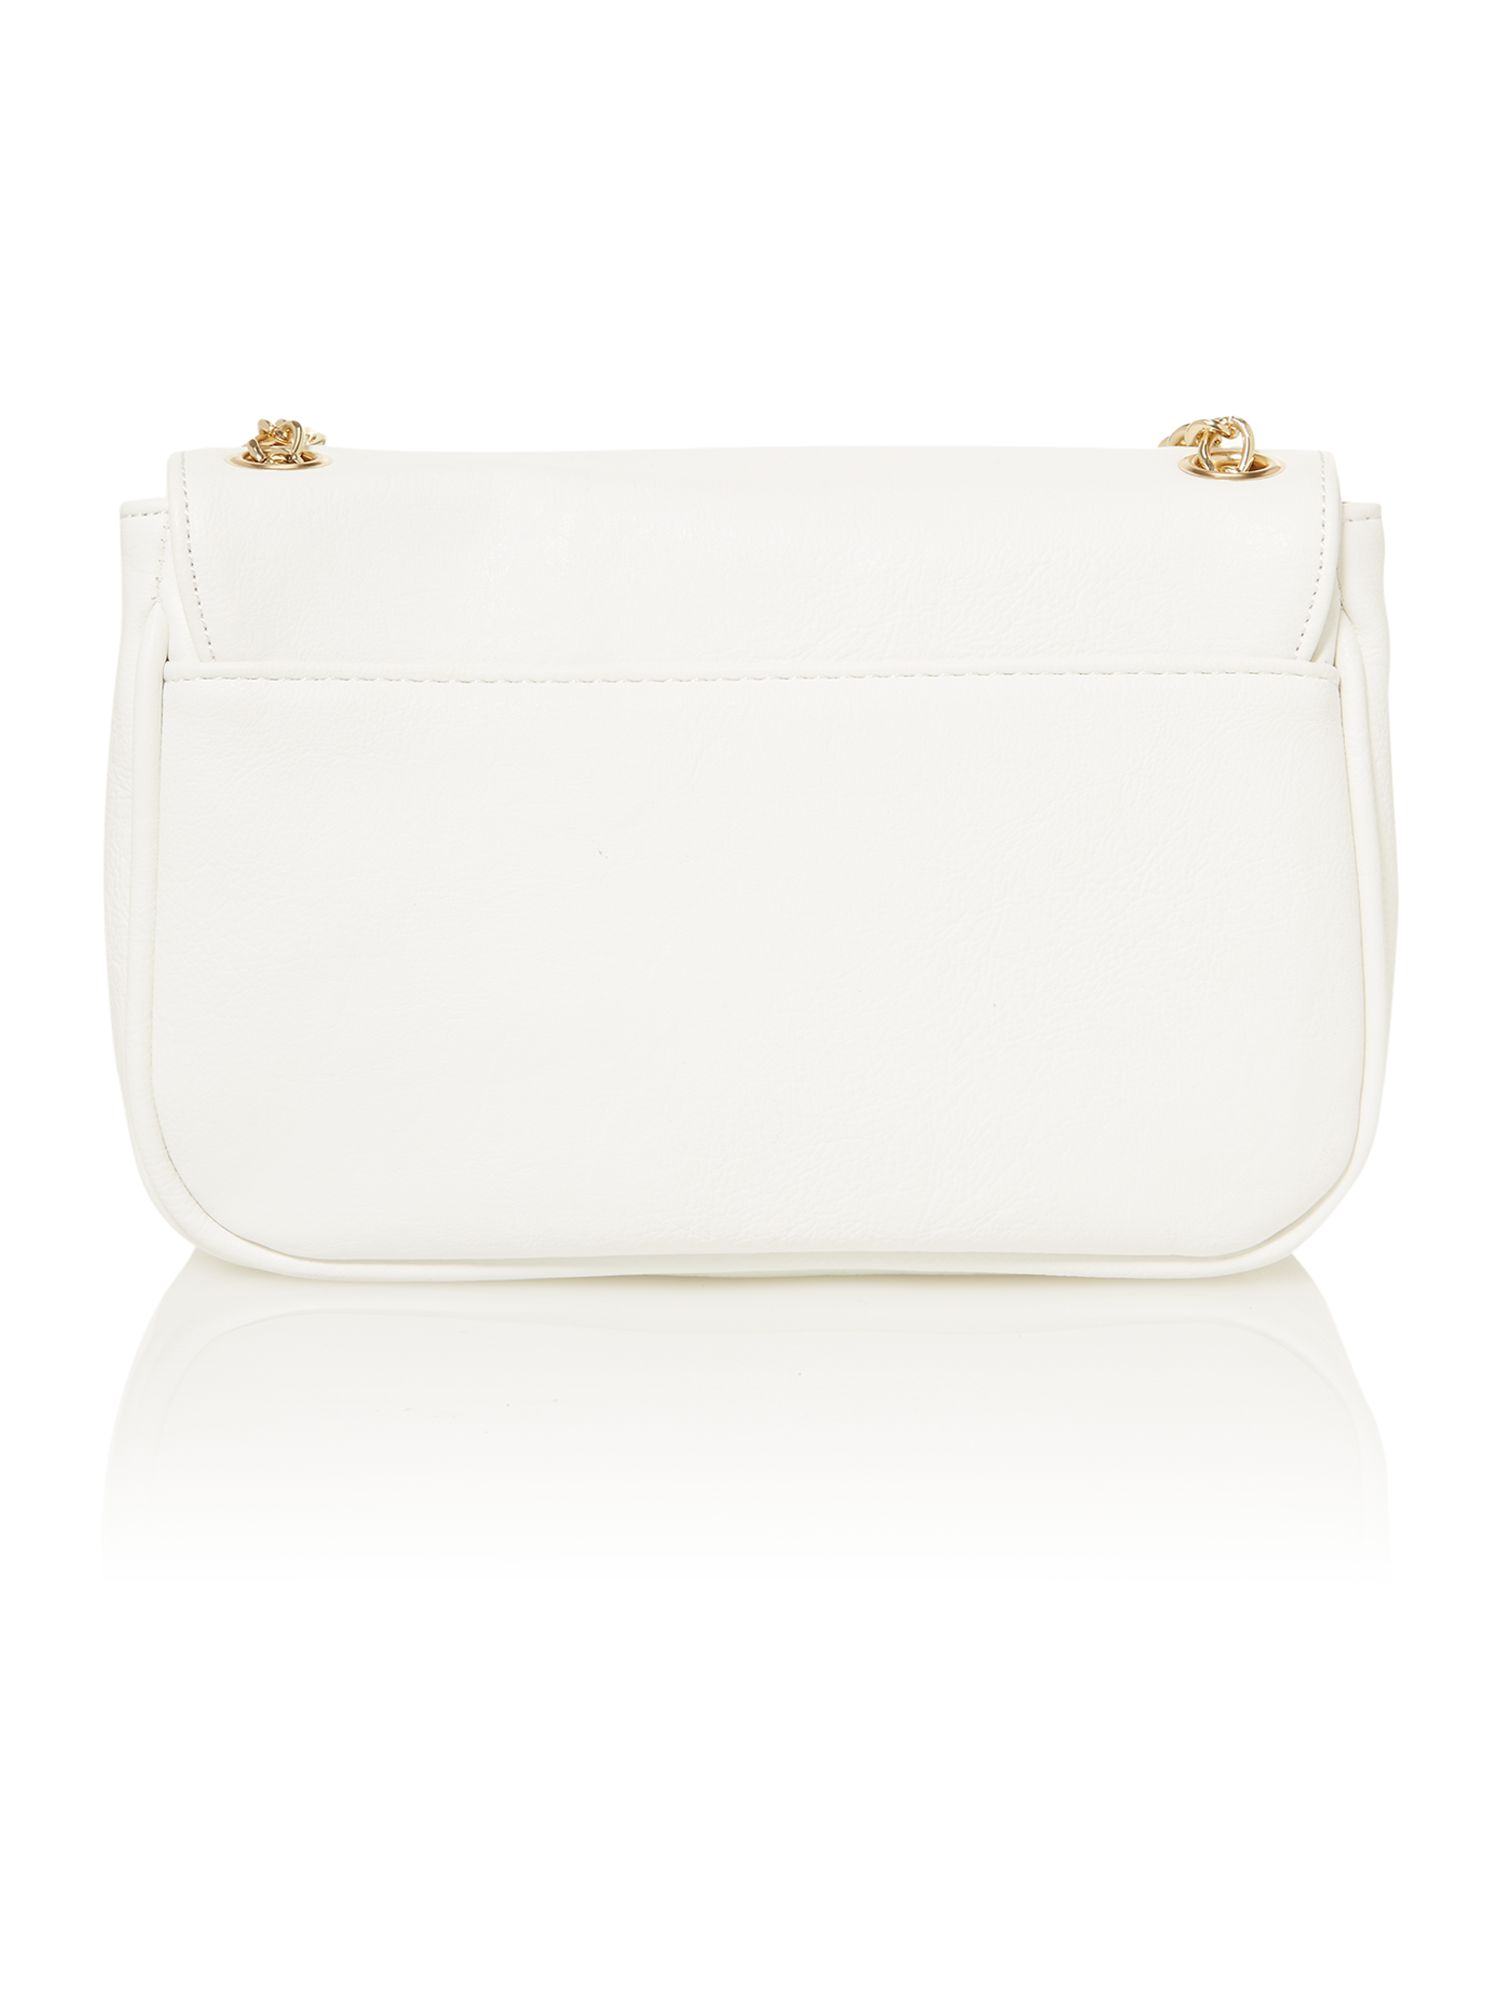 White small shoulder bag